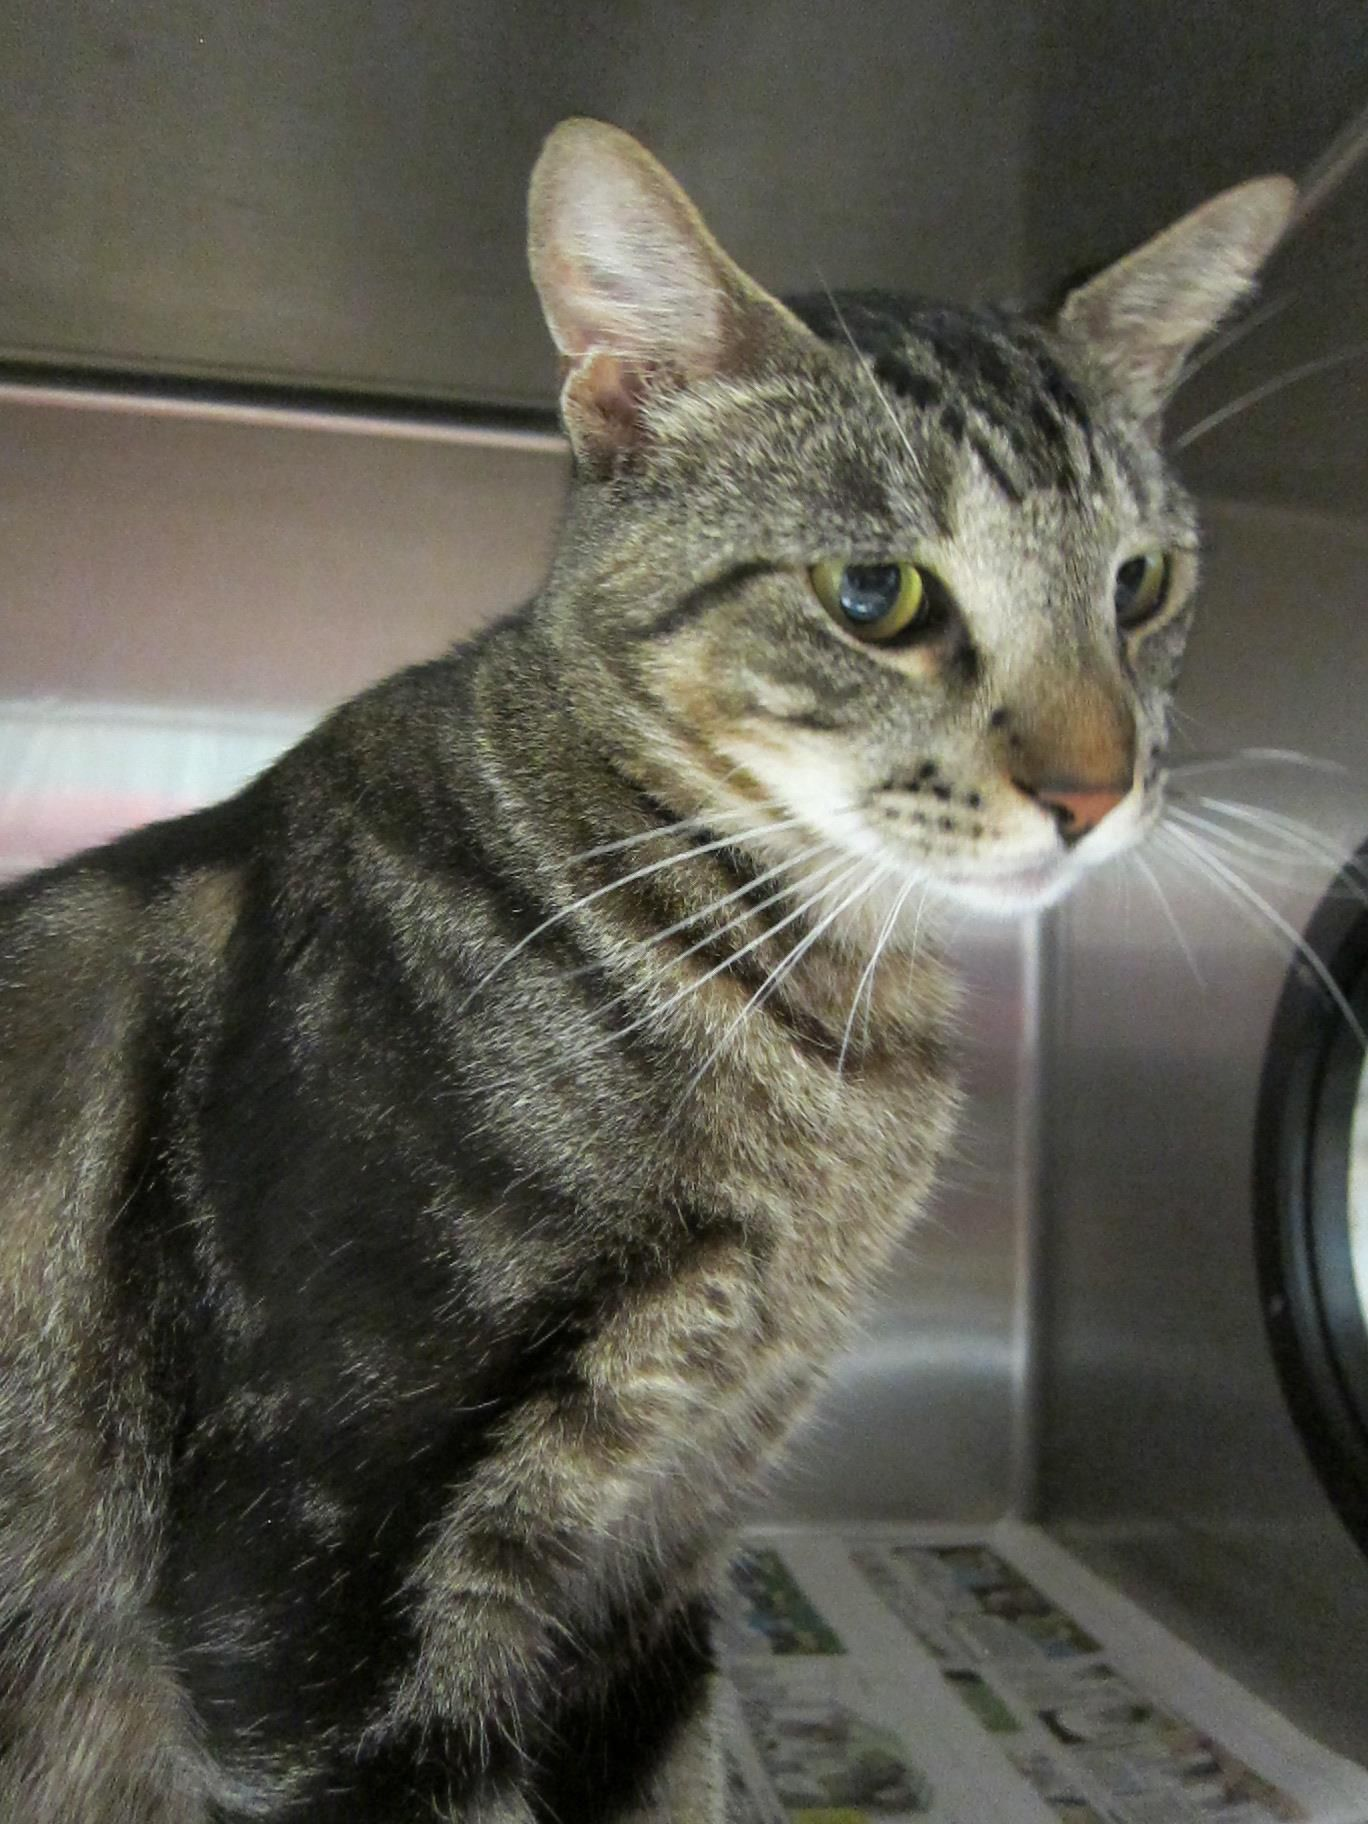 Extremely Urgent Euth Date Tomorrow Wednesday May 1 2013 This Beautiful Cat Is Hailey Id 1531934 Beautiful Cat Cute Little Kittens Service Animal